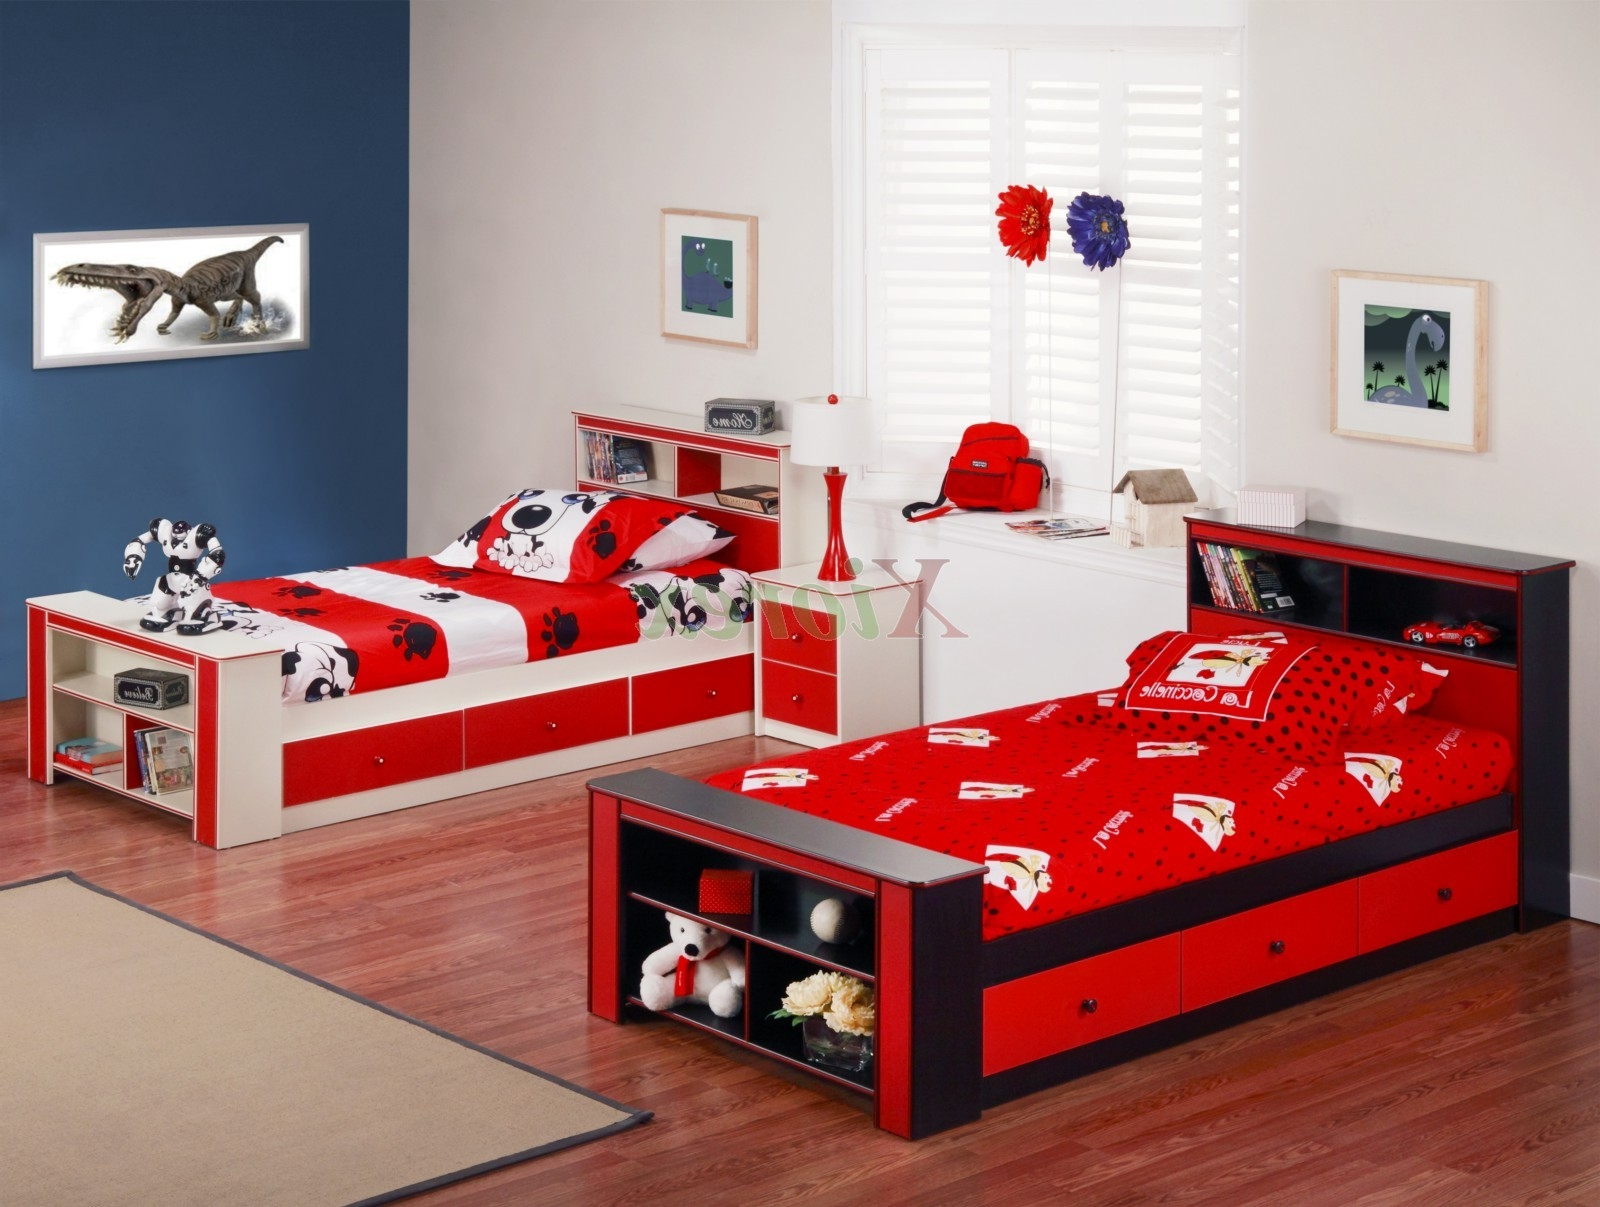 Kidsroomstogo | Mattress in Charlotte Nc | Boys Bedroom Furniture Sets Clearance